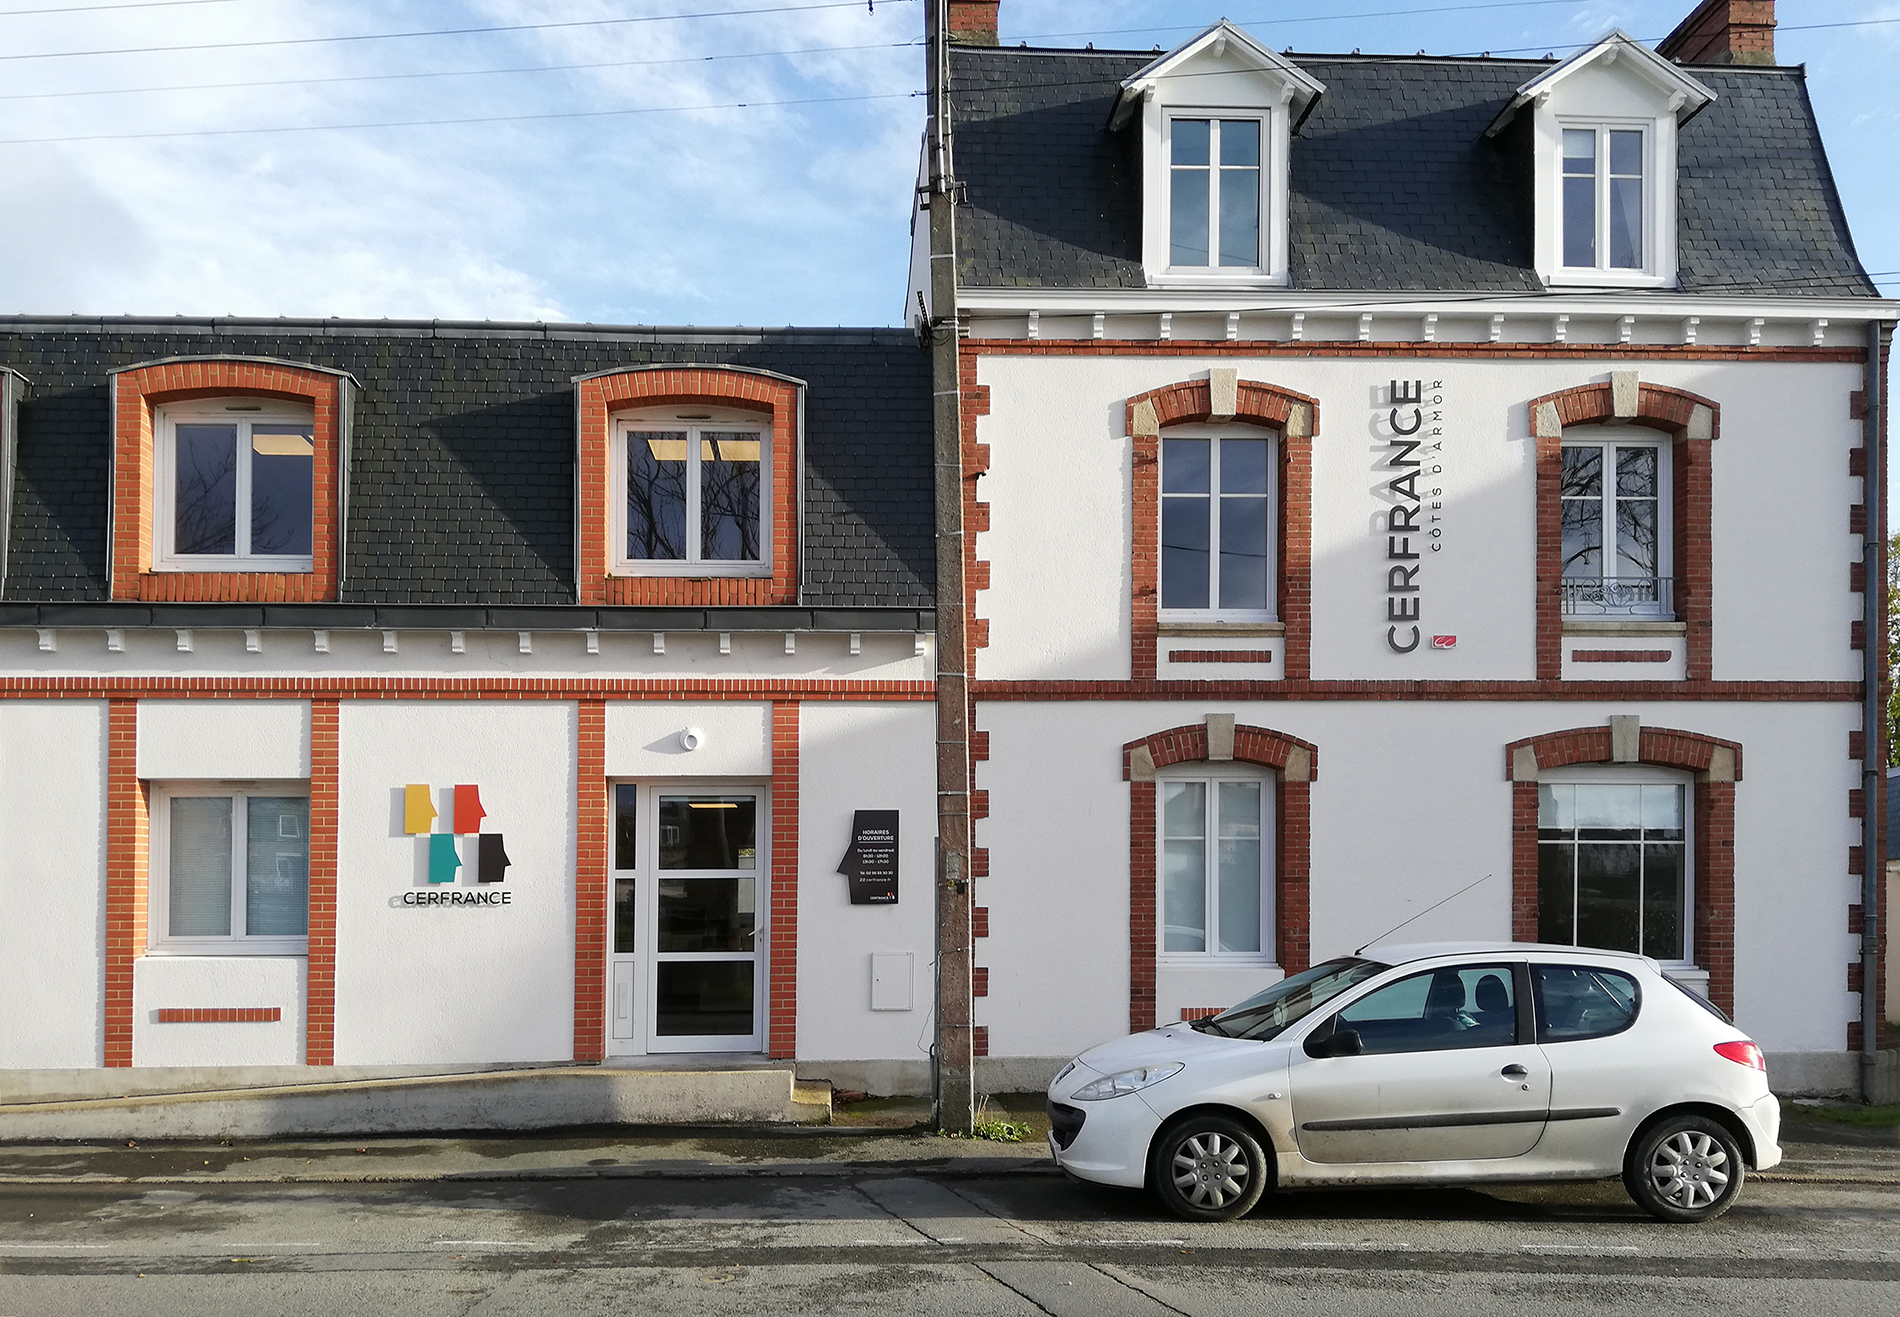 Agence Agence de Paimpol (Agriculture) cerfrance